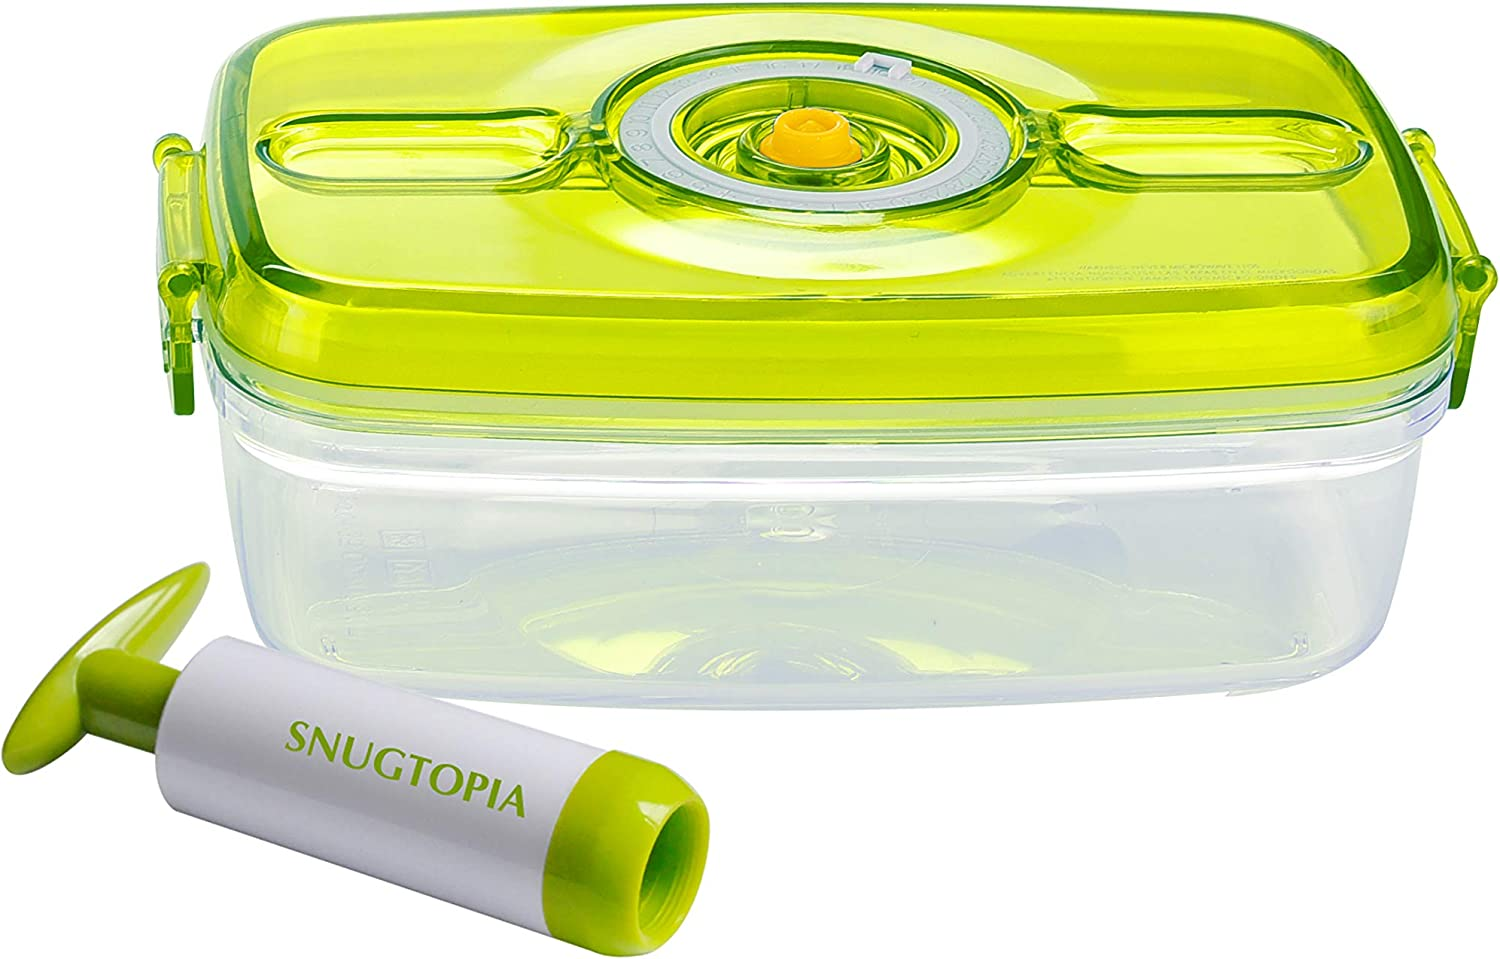 SNUGTOPIA Food Storage Container with Vacuum Sealed Airtight Lid BPA Free, 1 Glass-like Tritan Container with Manual Pump, Microwave, Freezer, Dishwasher Safe, Stain Proof, 33.81 oz